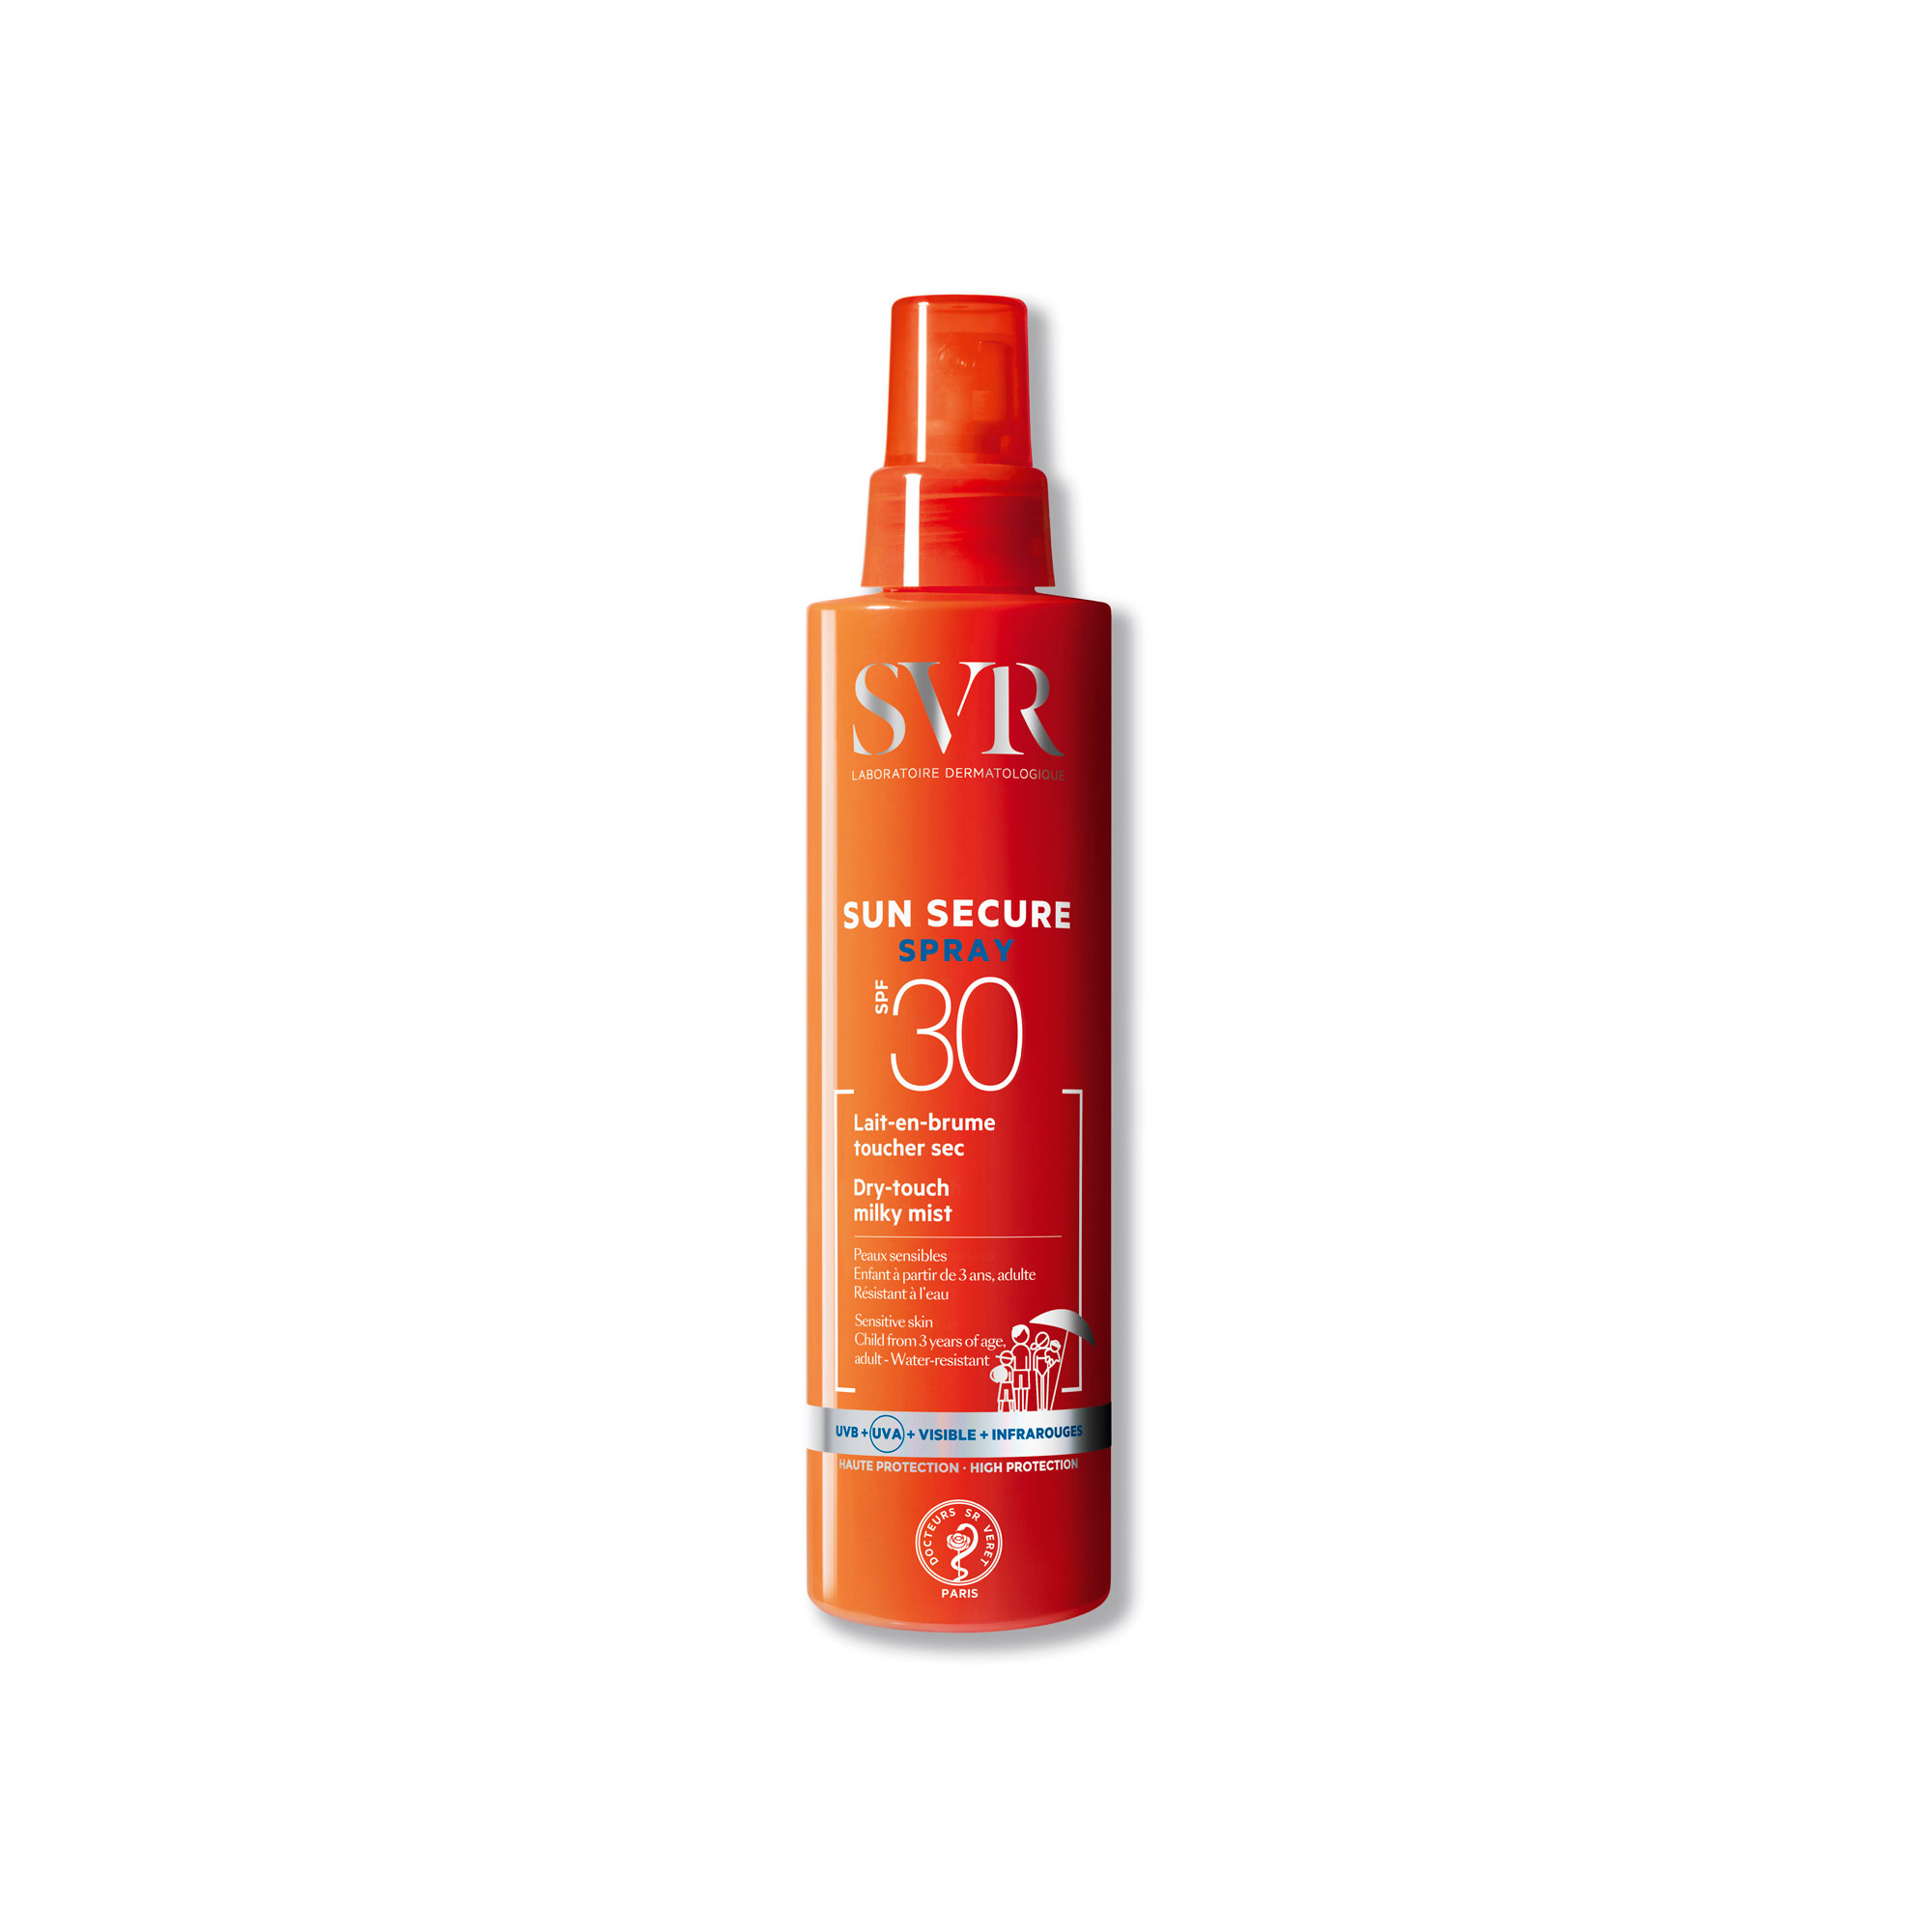 SVR SUN SECURE SPRAY SPF30 200ML